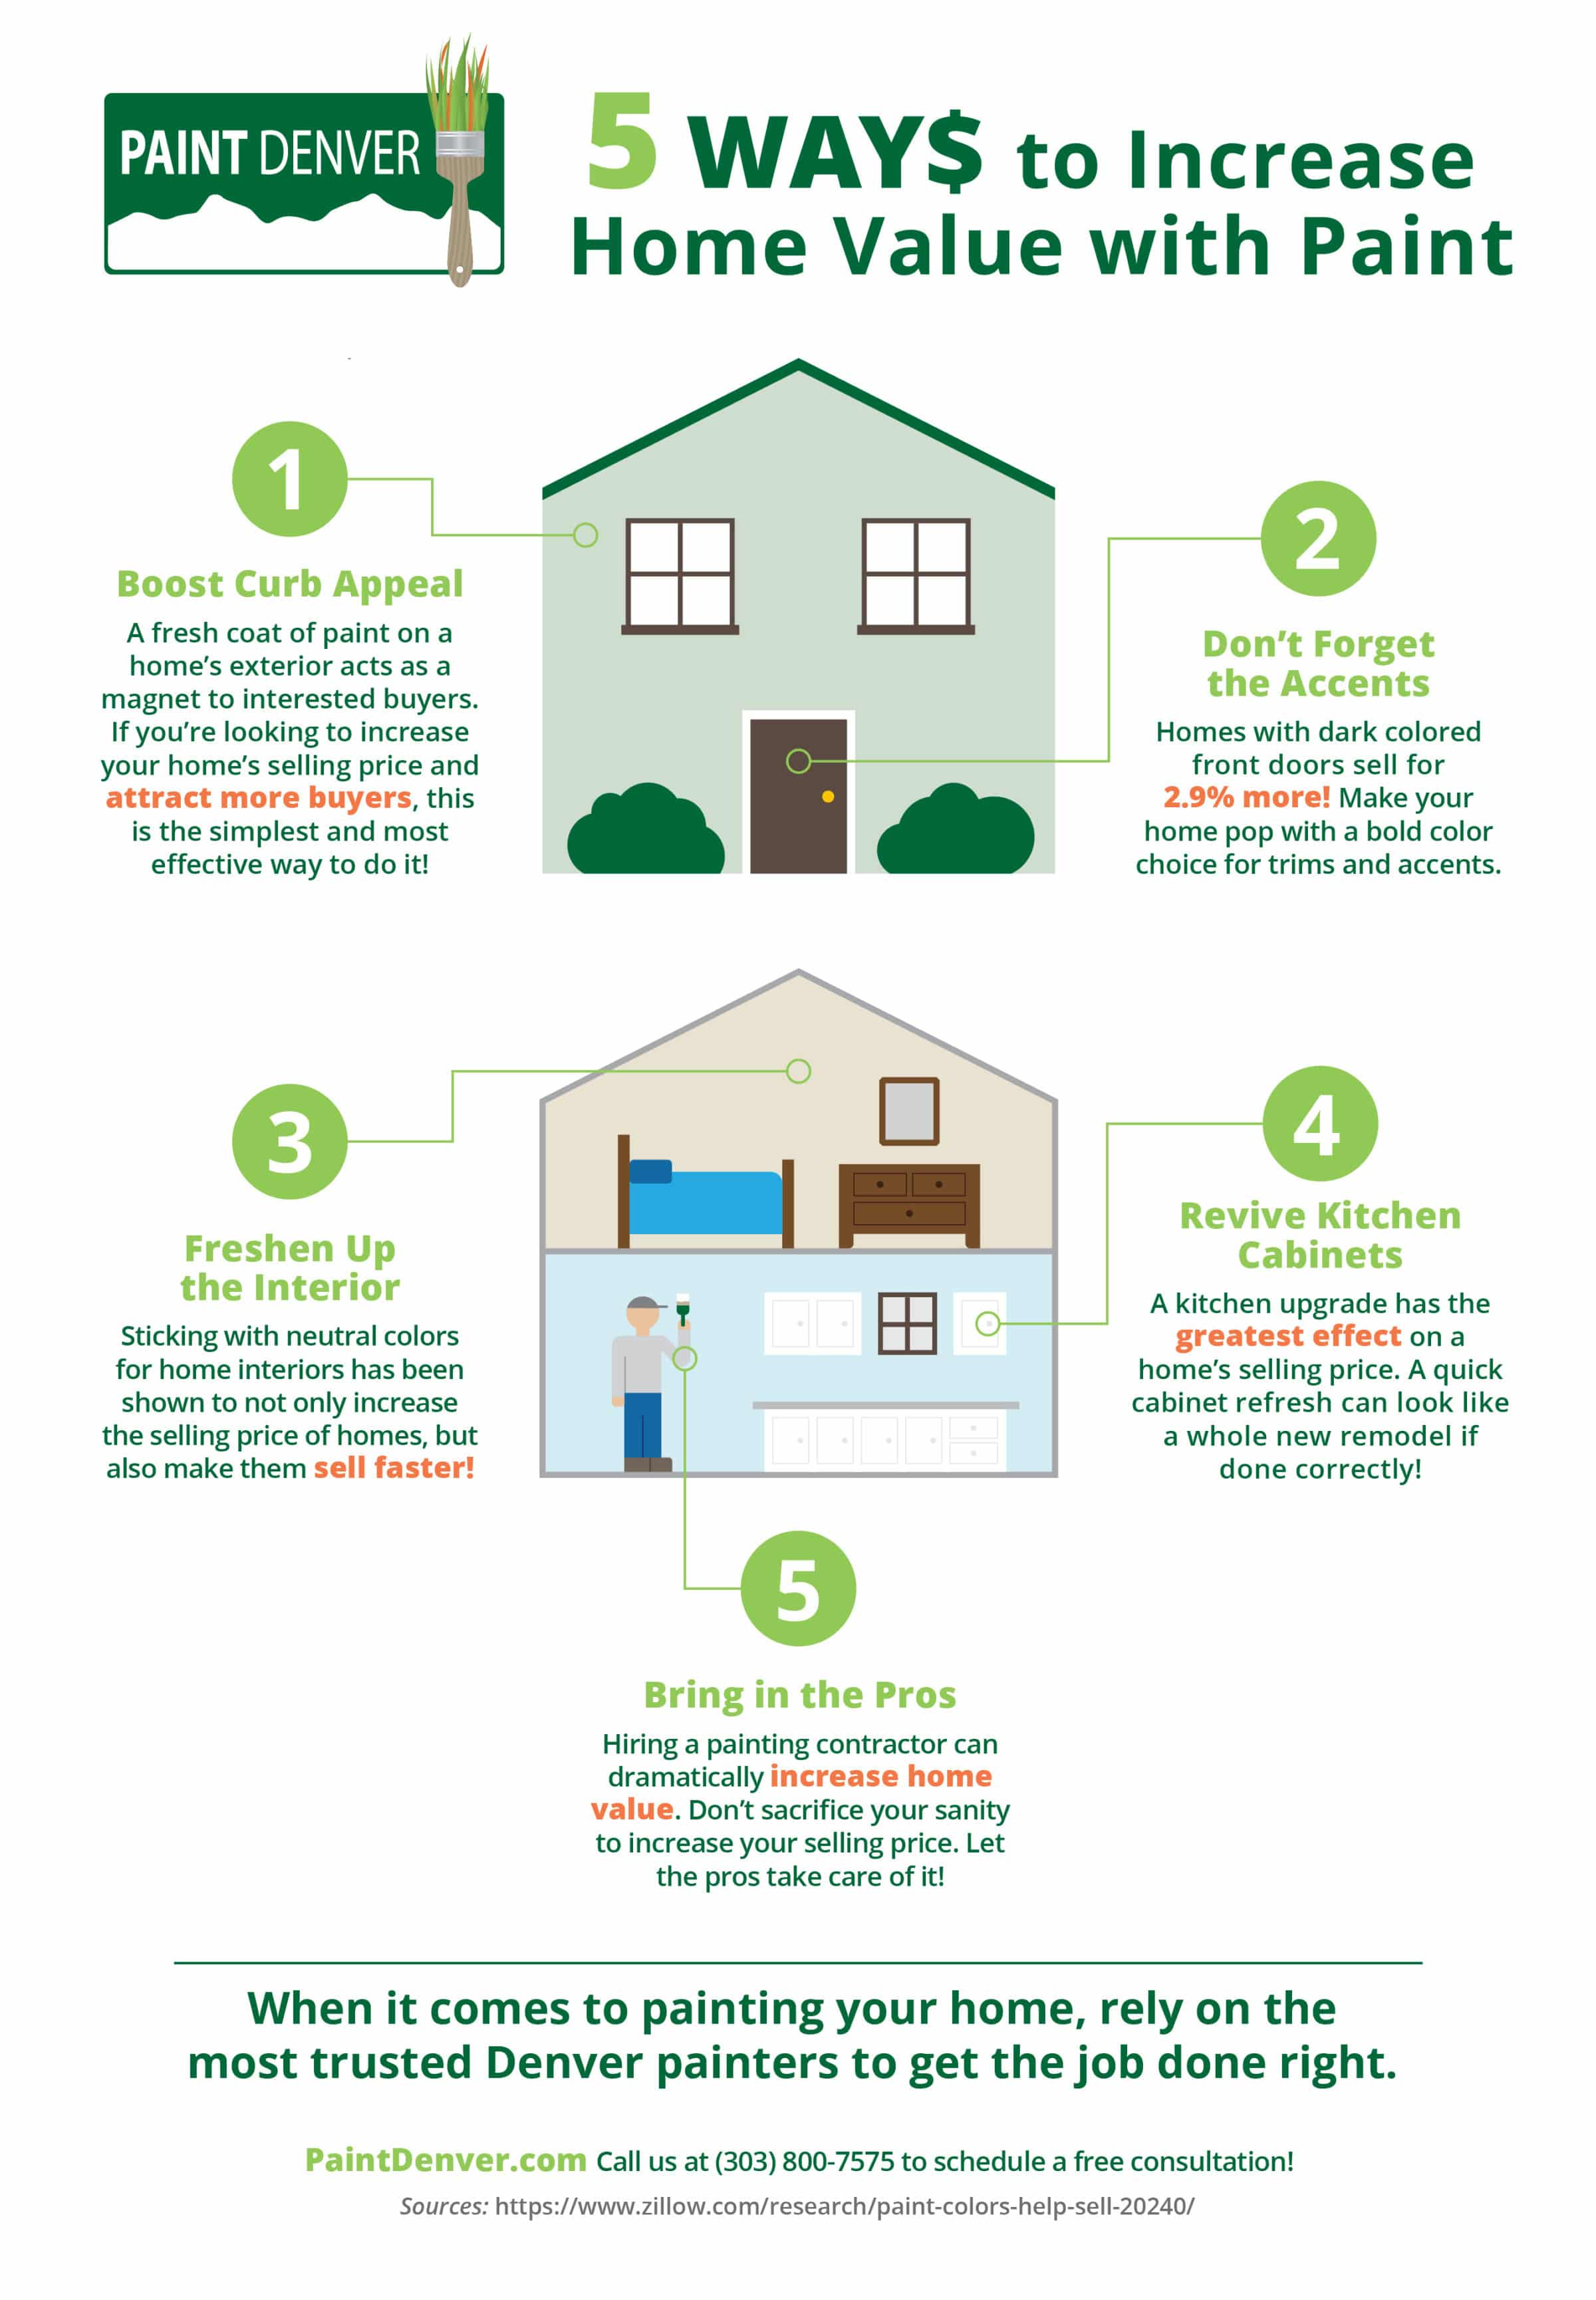 Infographic explaining 5 ways to increase home value with paint from a Denver painting contractor, Paint Denver.